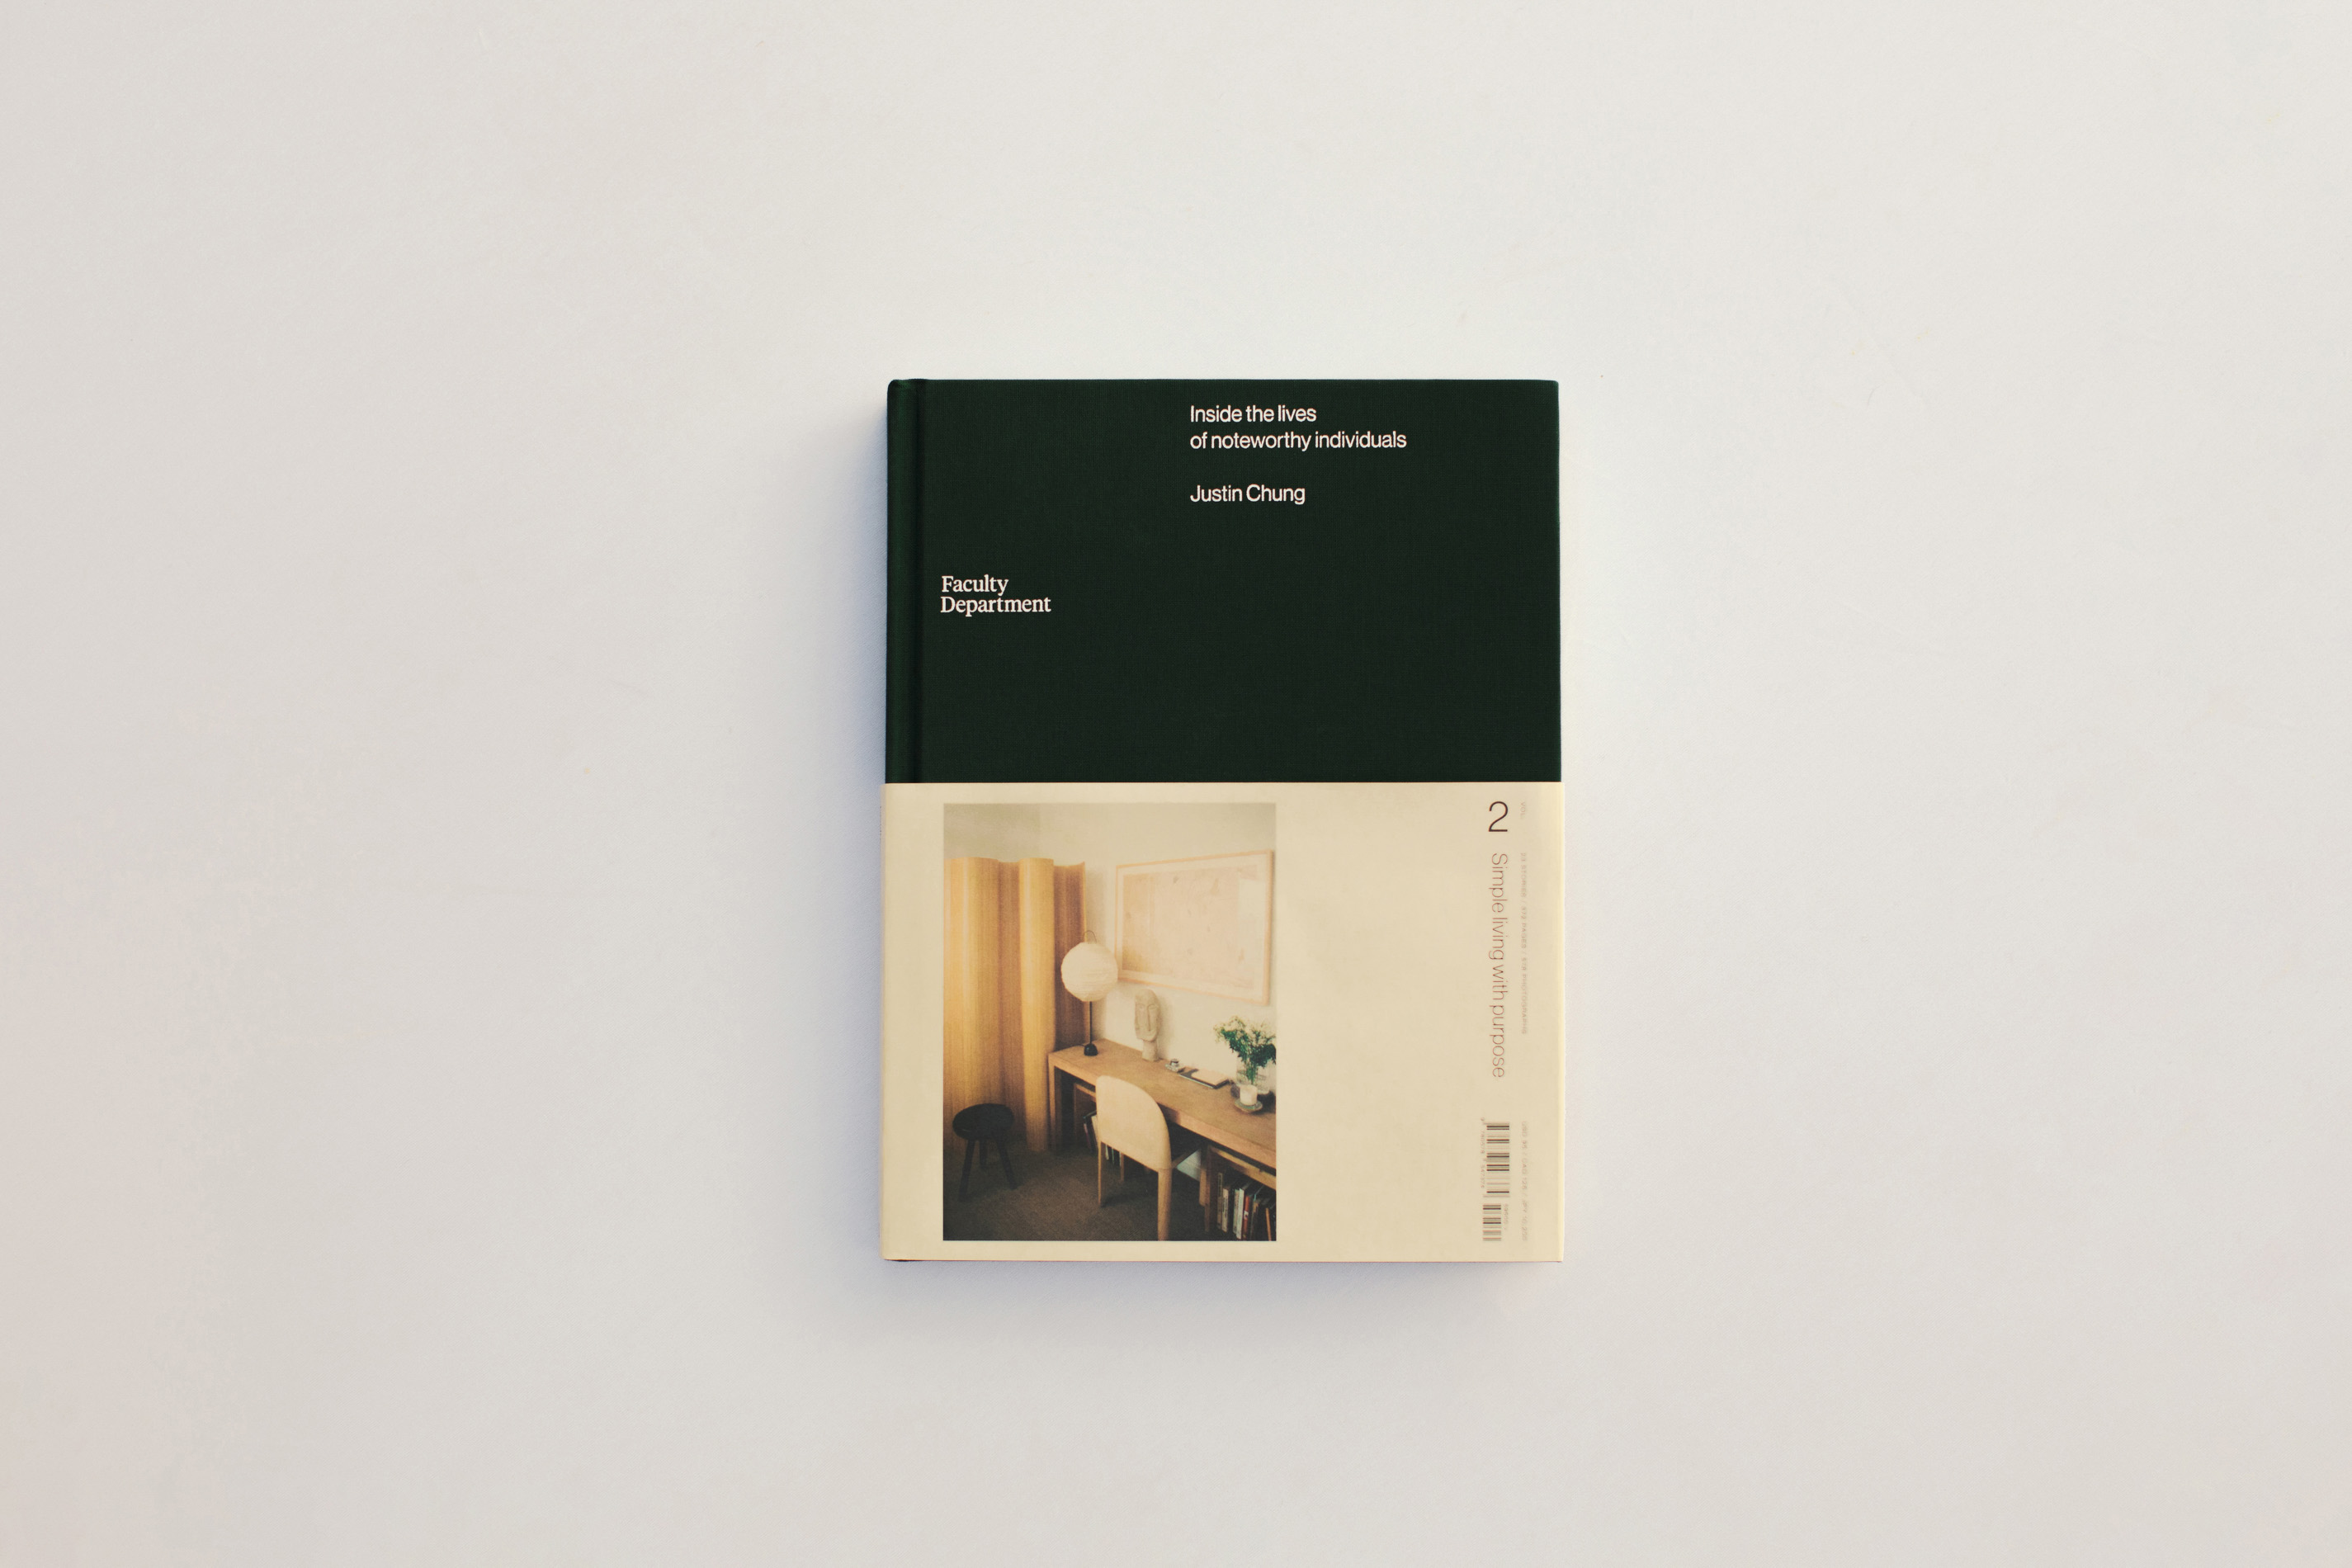 Faculty Department Volume Two, Faculty Department, Justin Chung, Book, Kodak